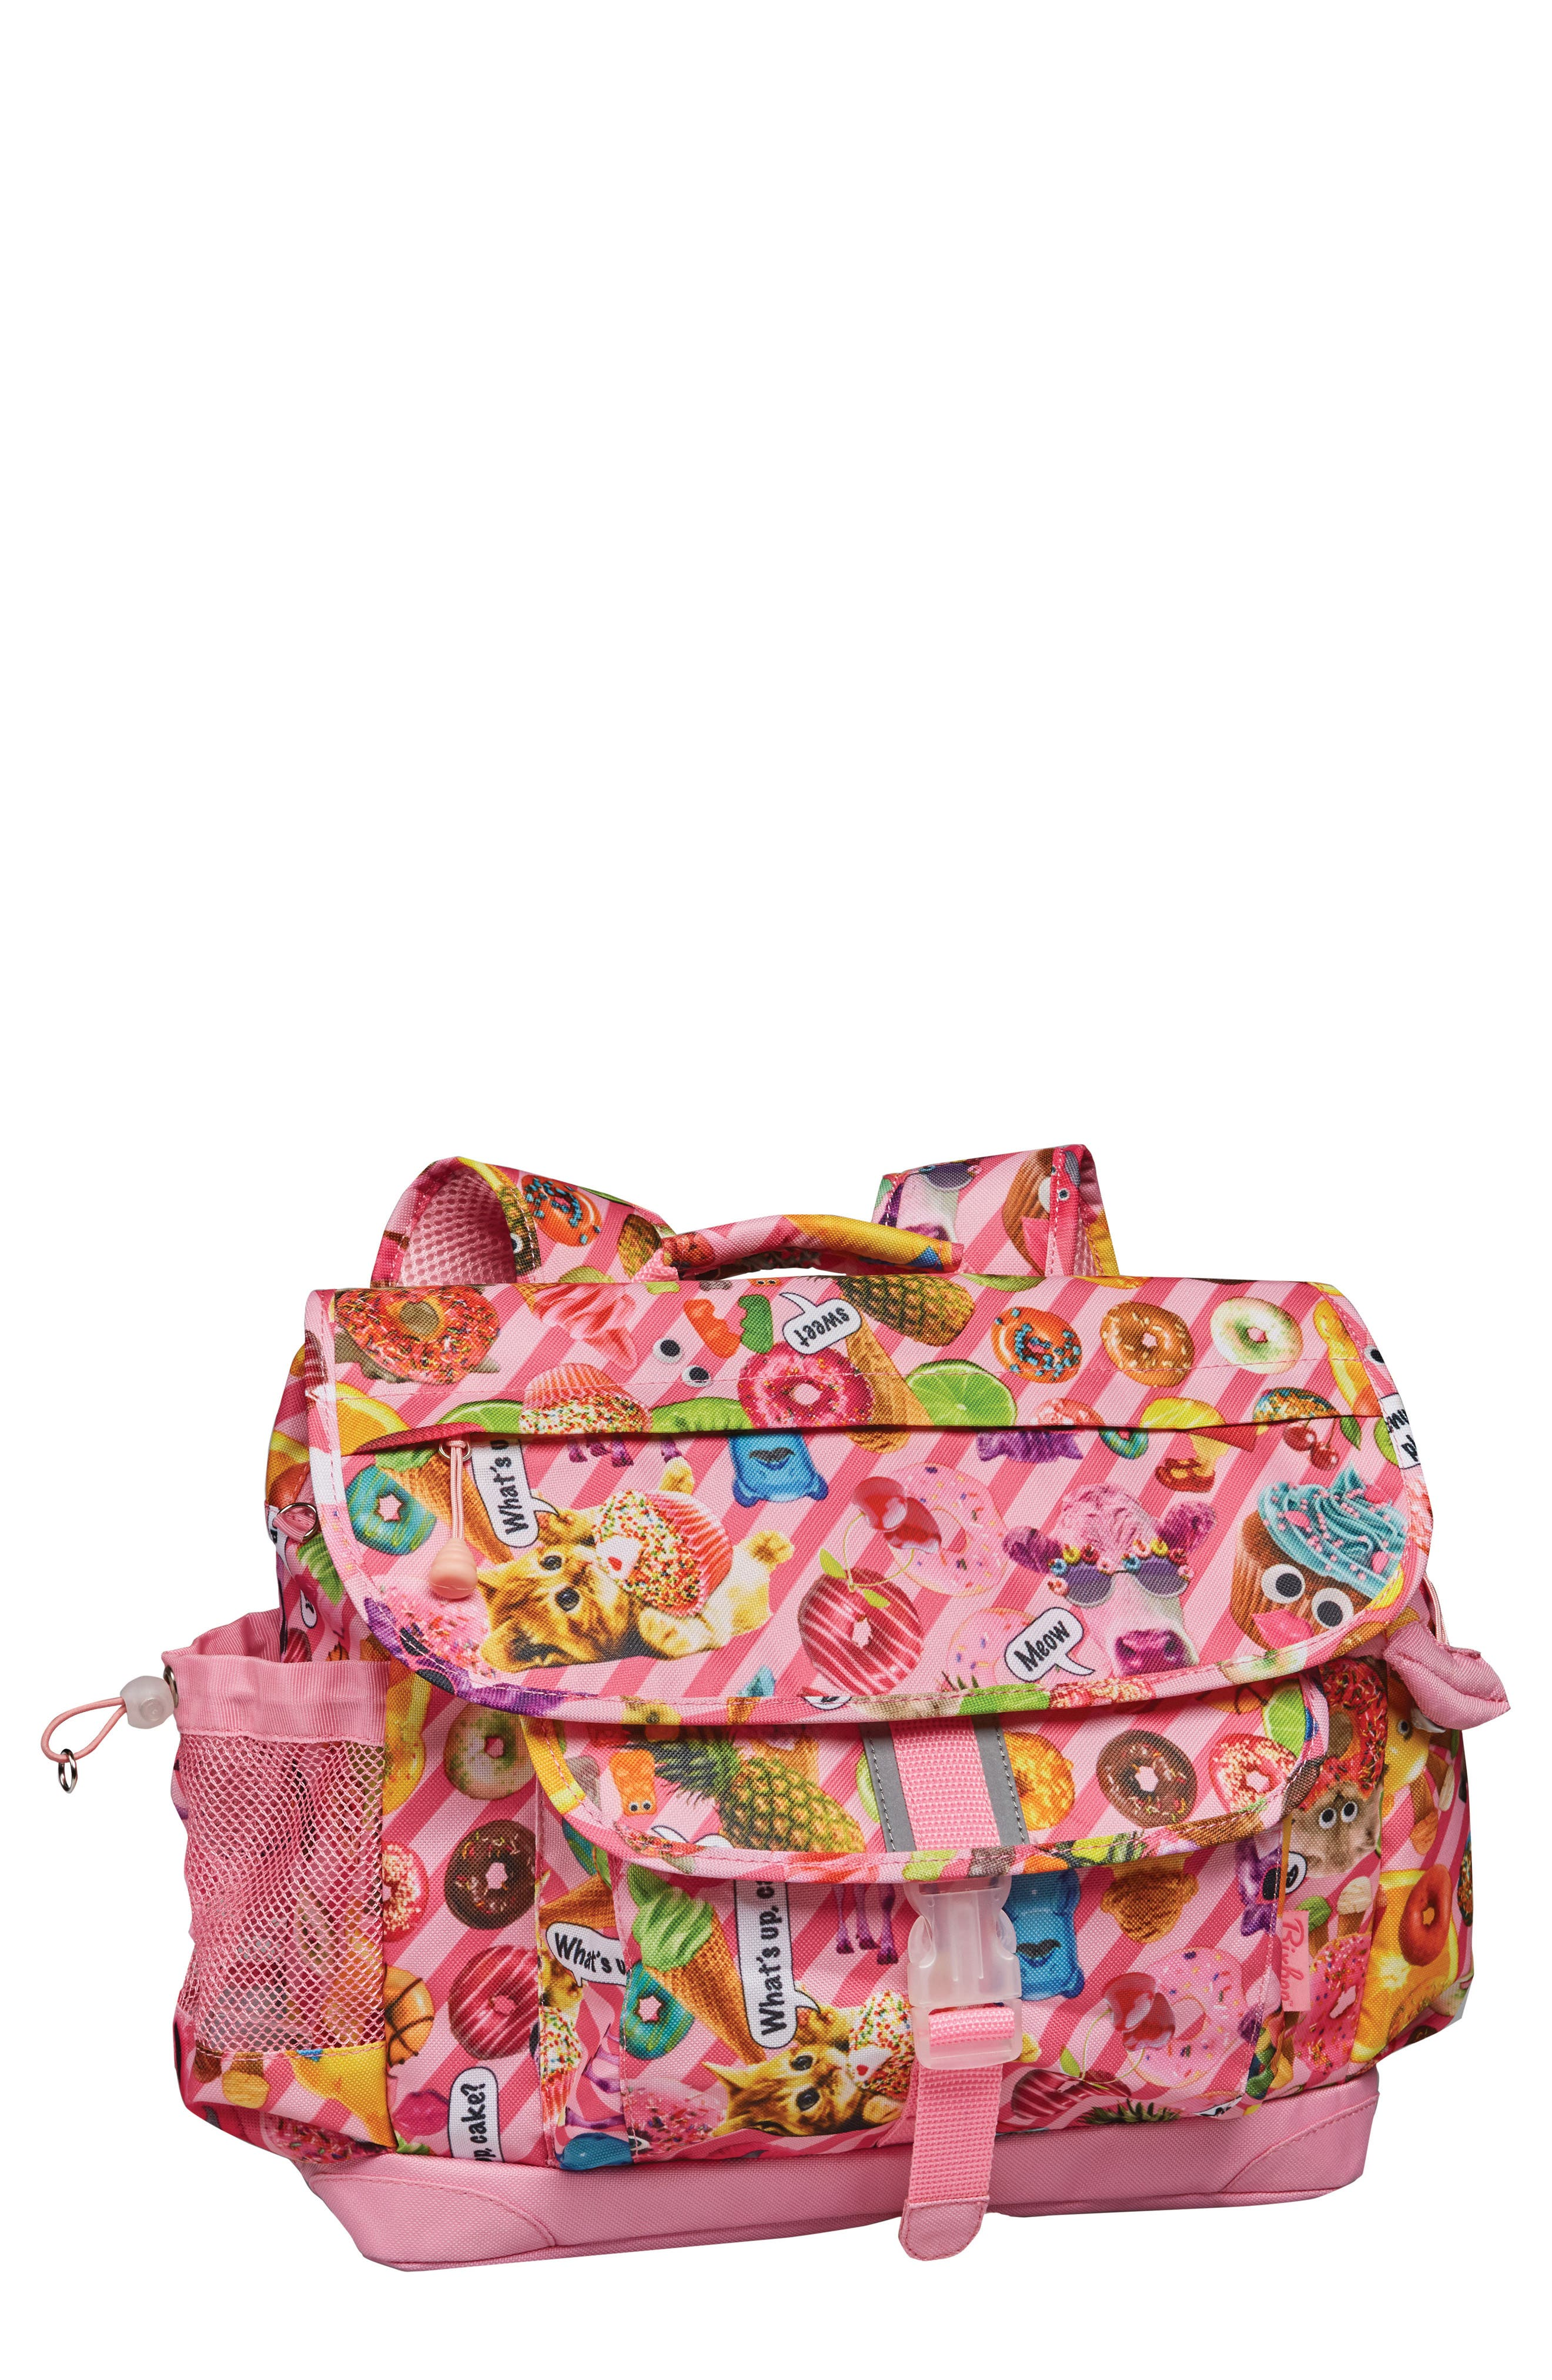 Funtastical Backpack,                         Main,                         color, Pink